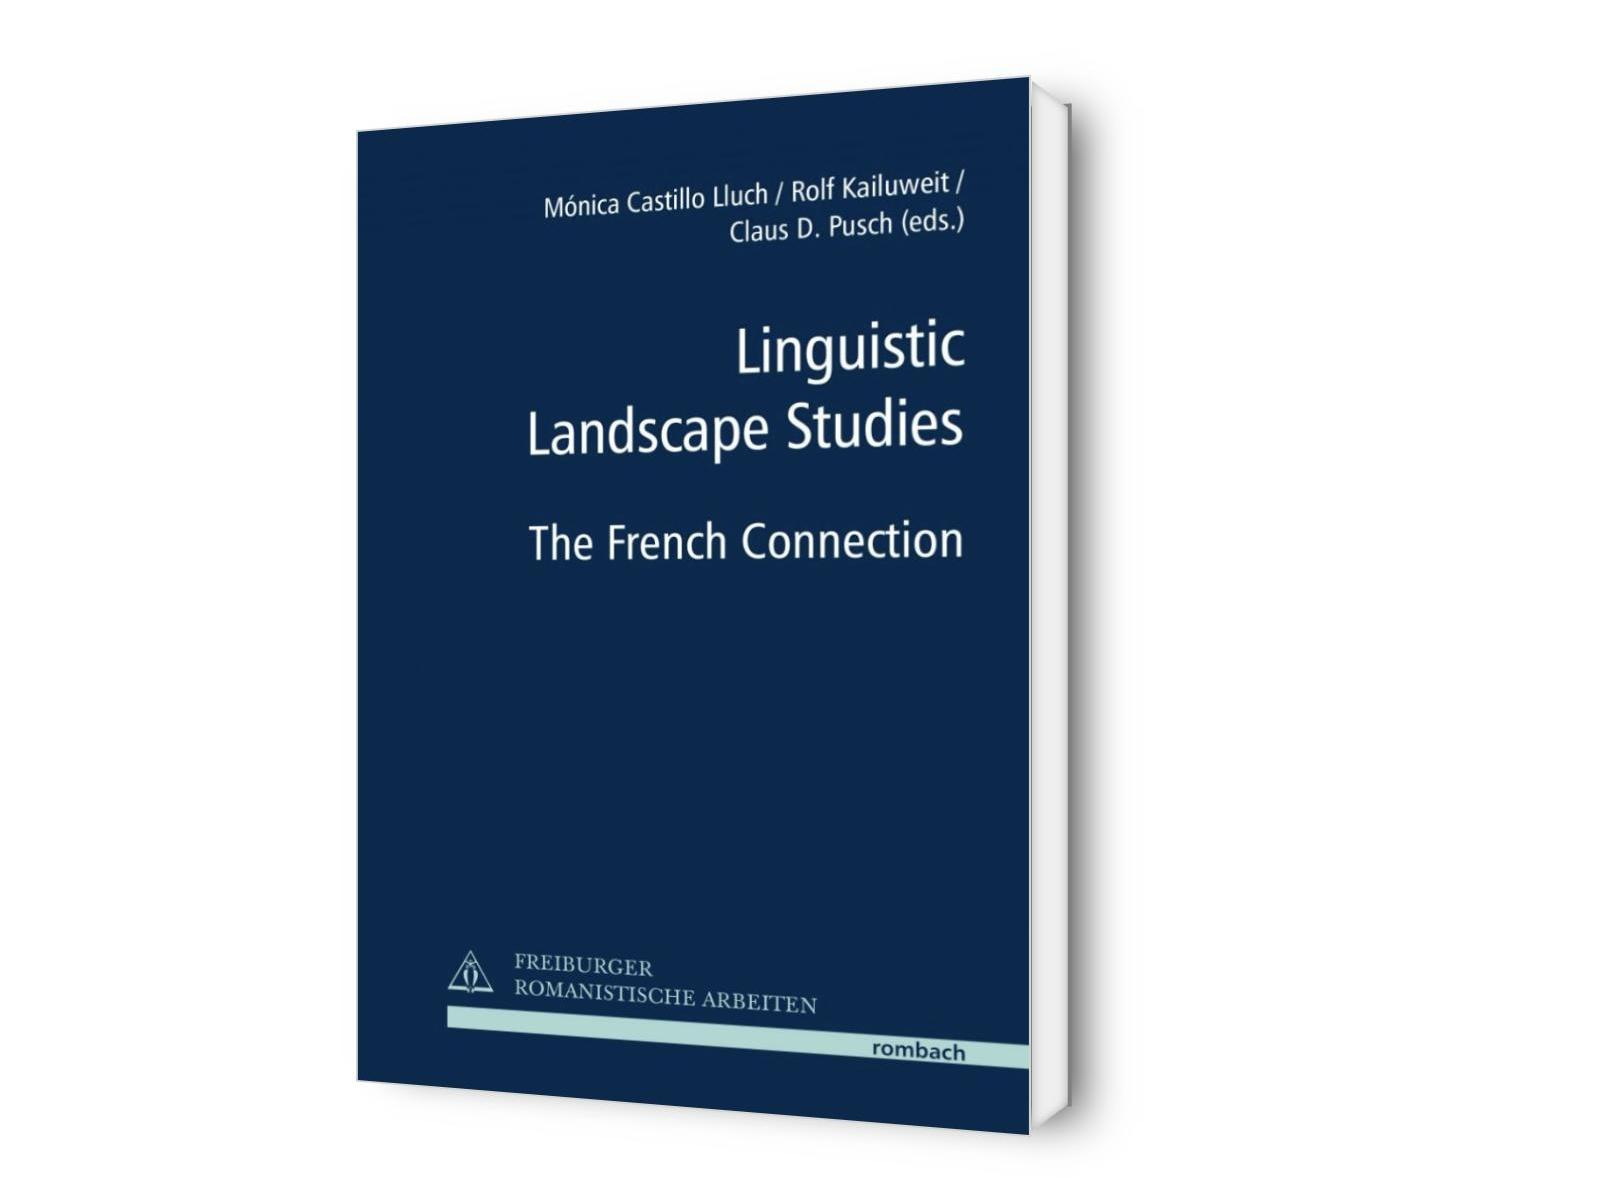 Linguistic Landscape Studies. The French Connection